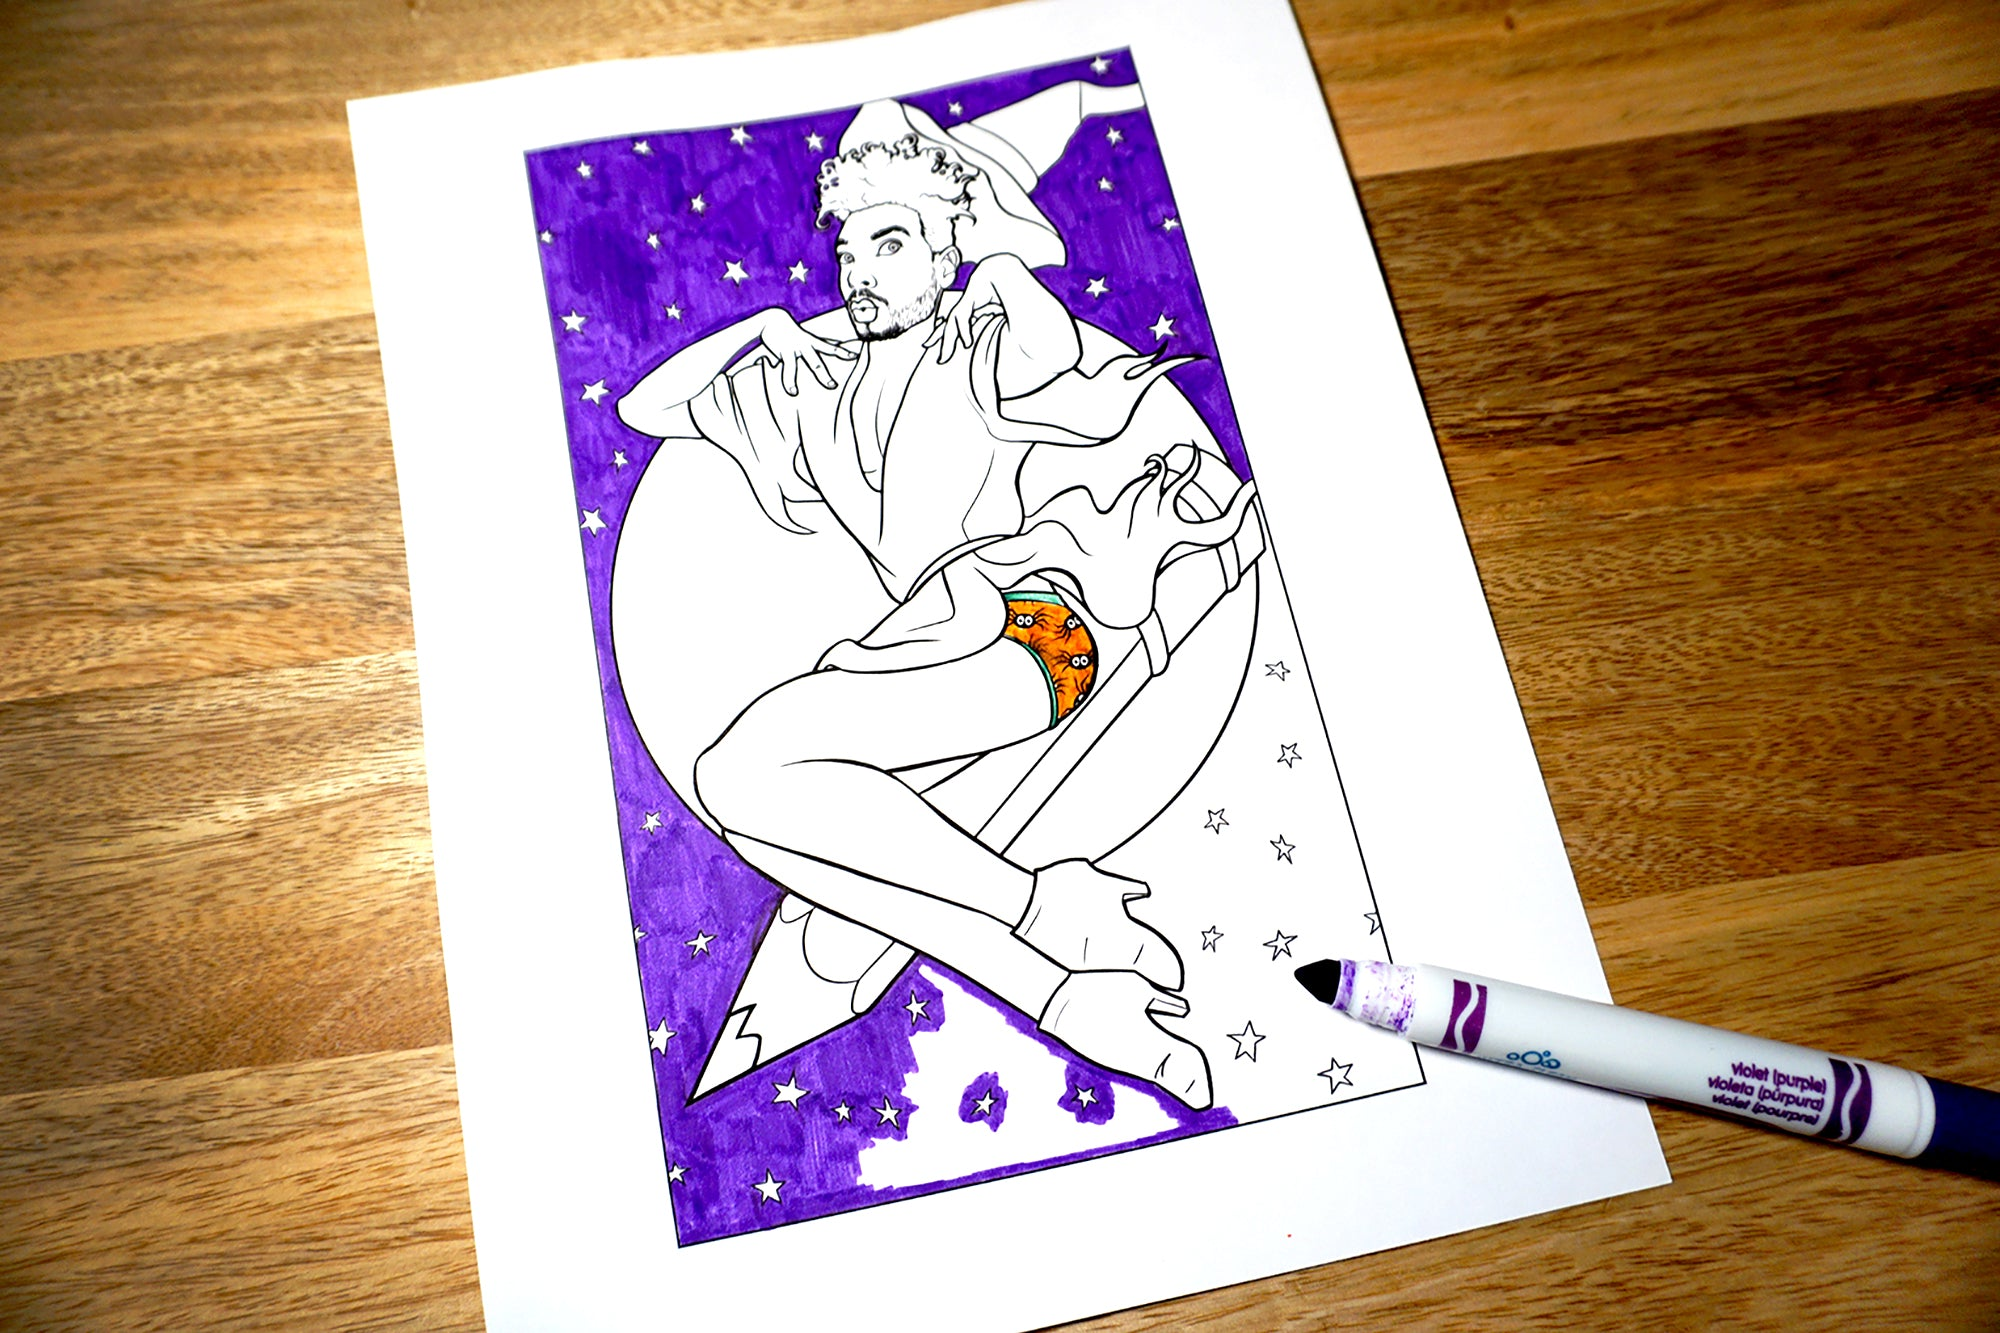 Cheesecake Boys Coloring Book Digital PDF | Download 63 Pages of Printable Male Pin-Ups